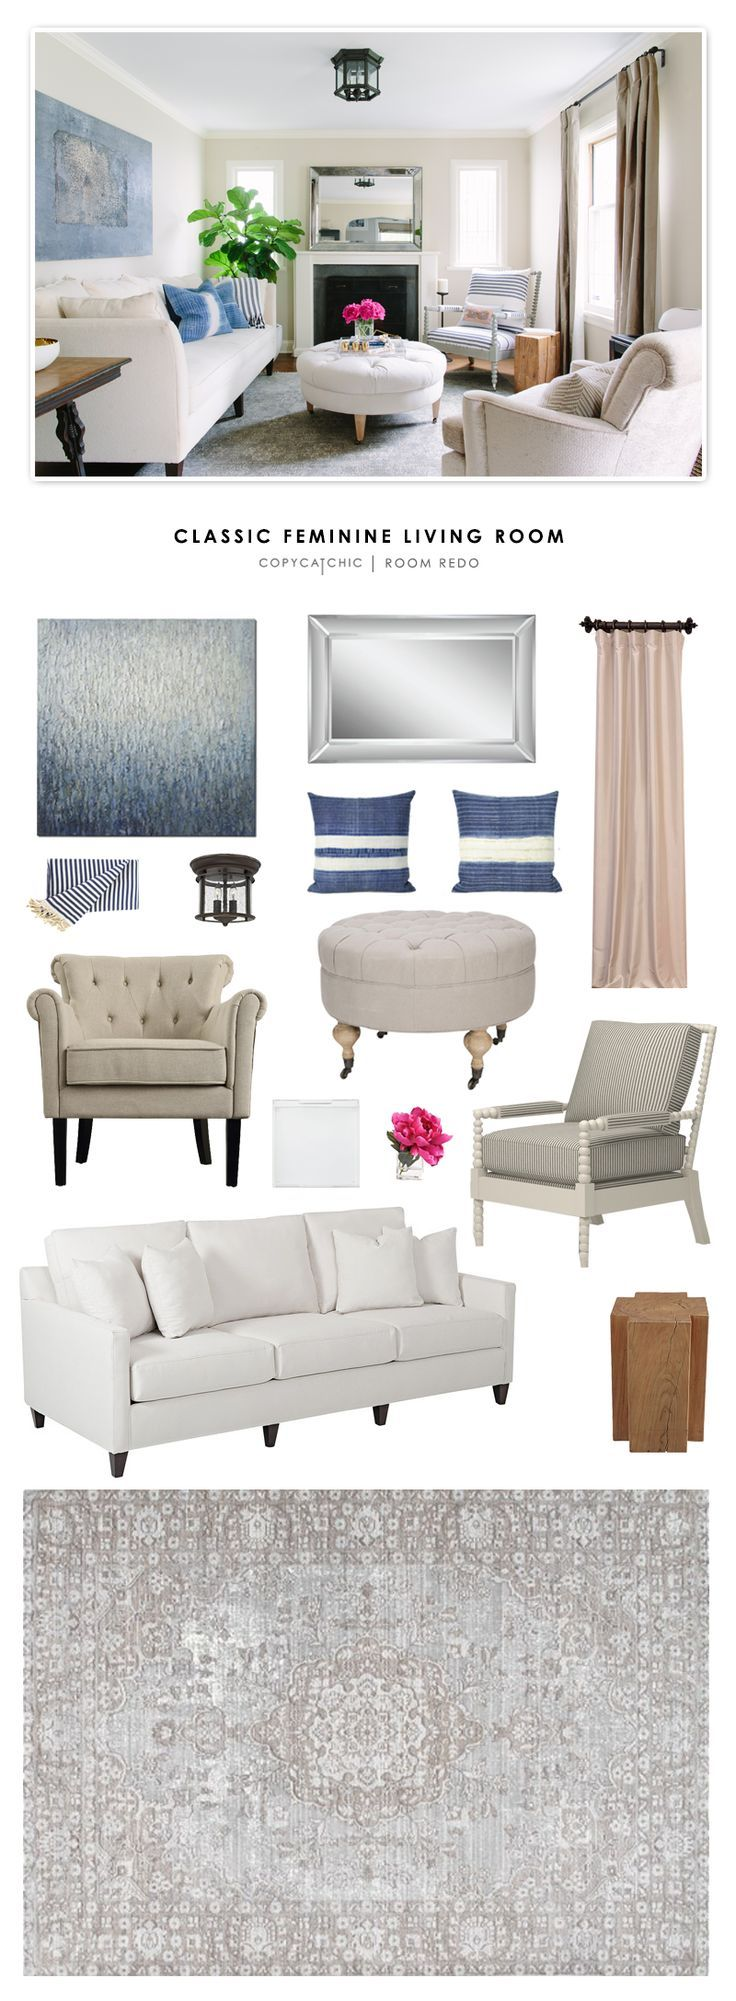 40 Living Room Decorating Ideas